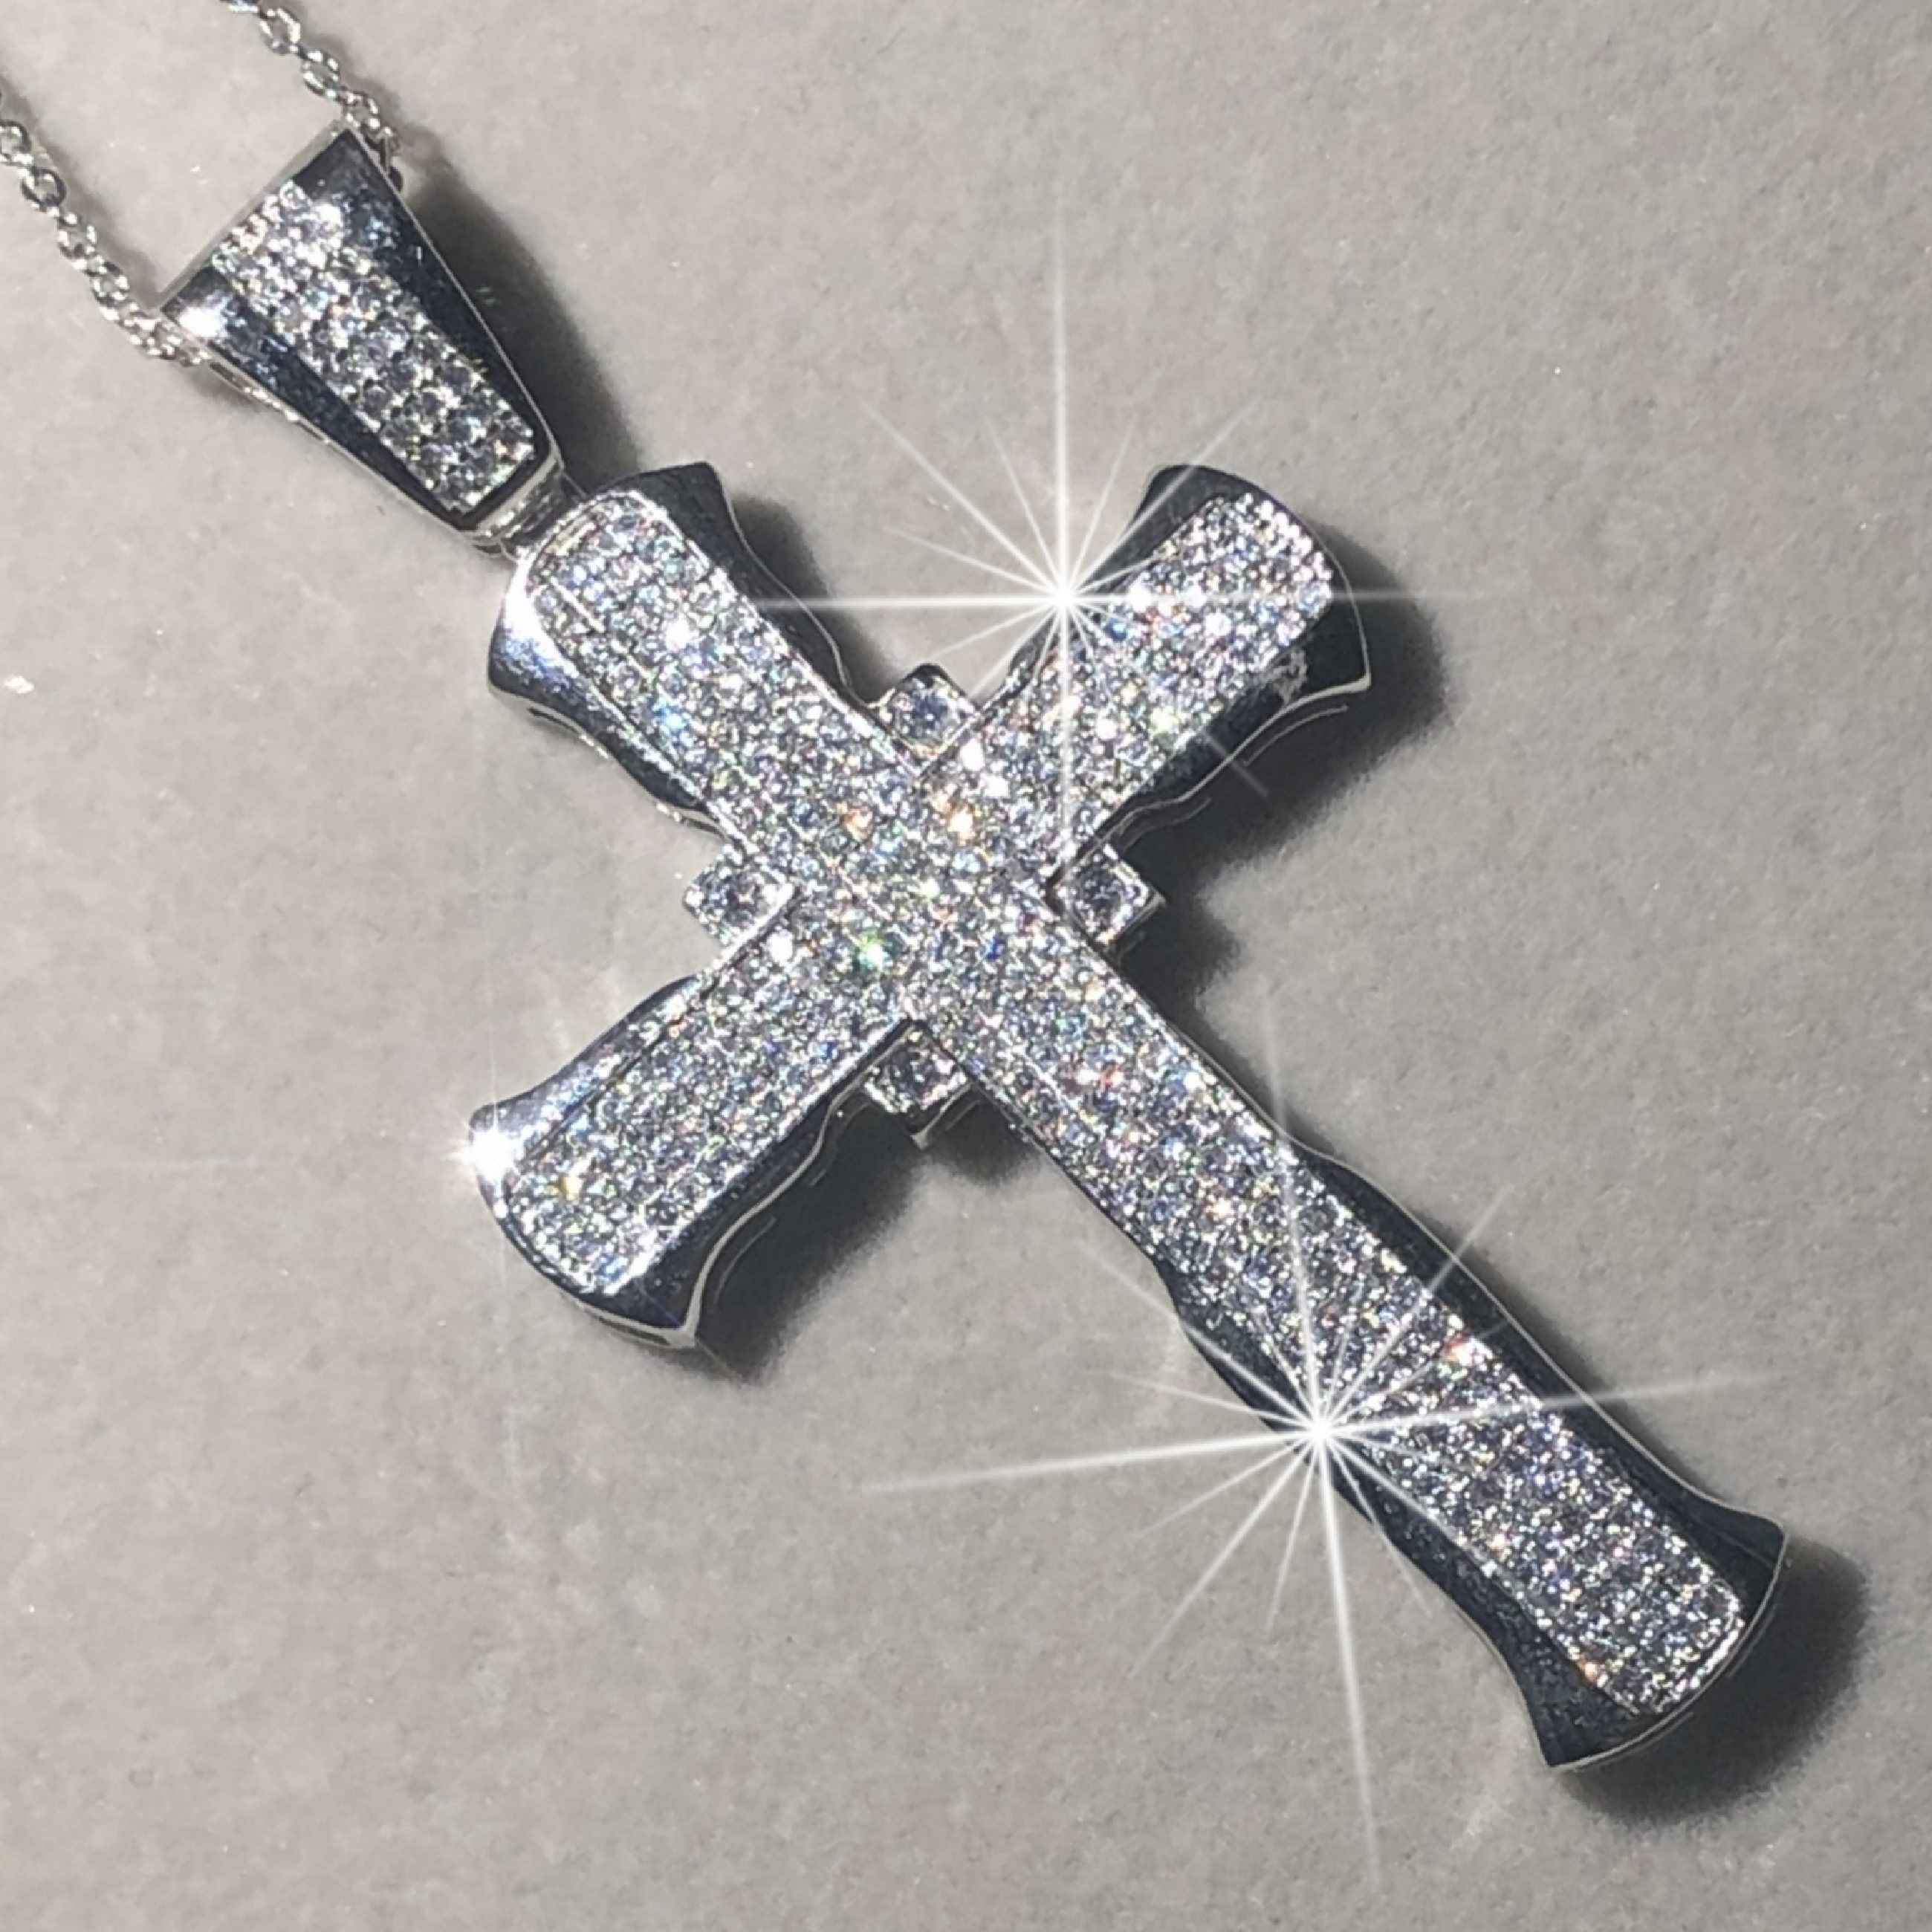 New 925 Silver Exquisite Bible Jesus Cross Pendant Necklace For Women Men Crucifix Charm Simulated Platinum Diamond Jewelry